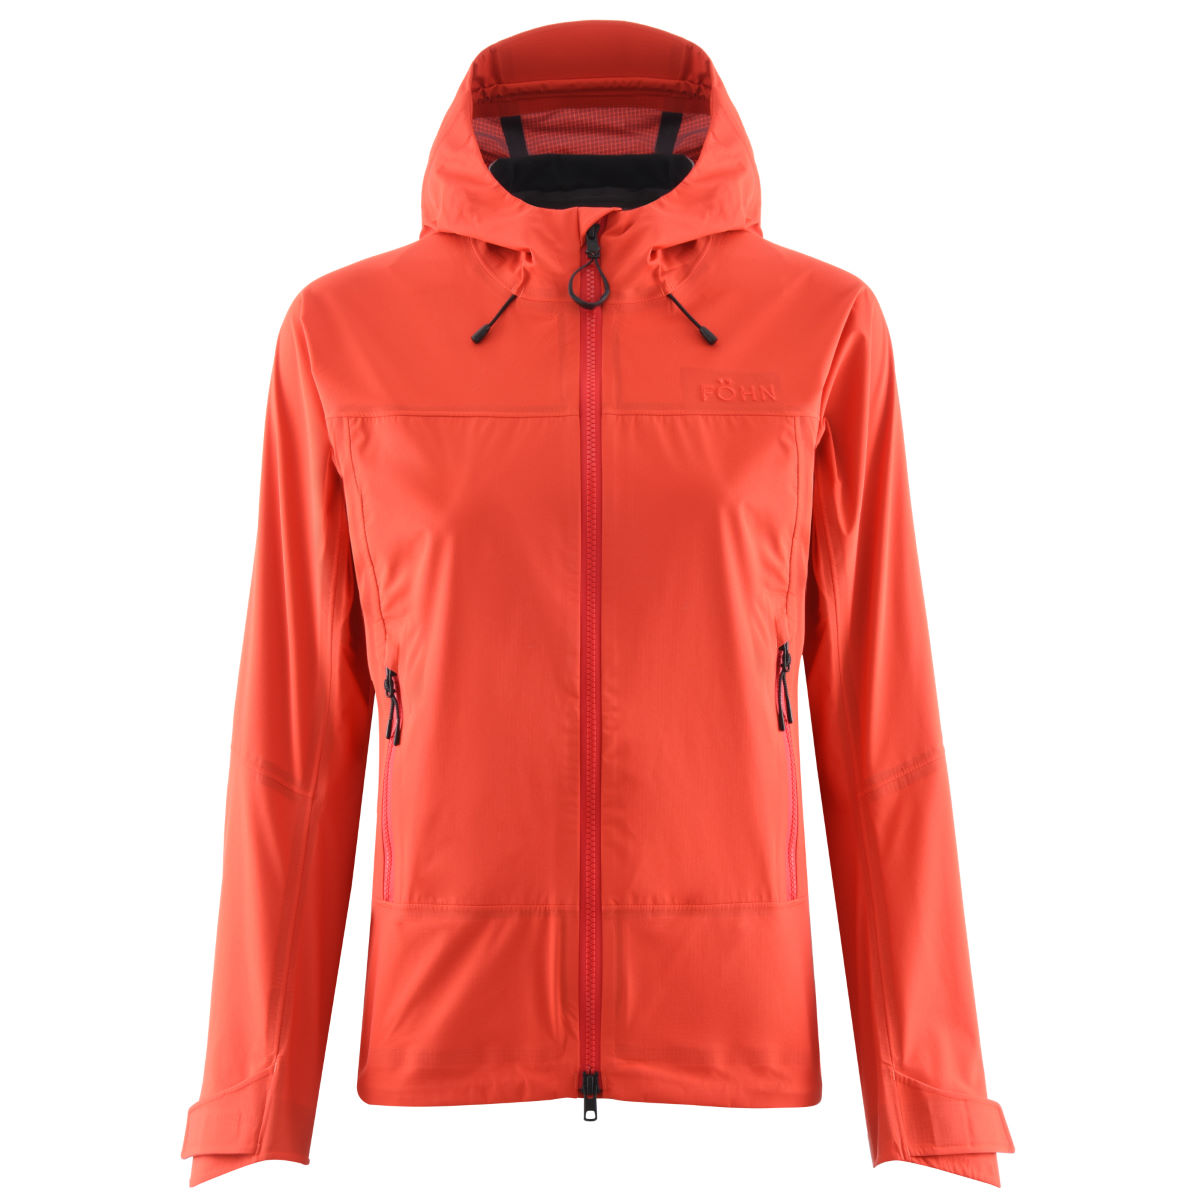 Veste Femme Föhn  Supercell 3L (imperméable) - UK 8 Orange/Red